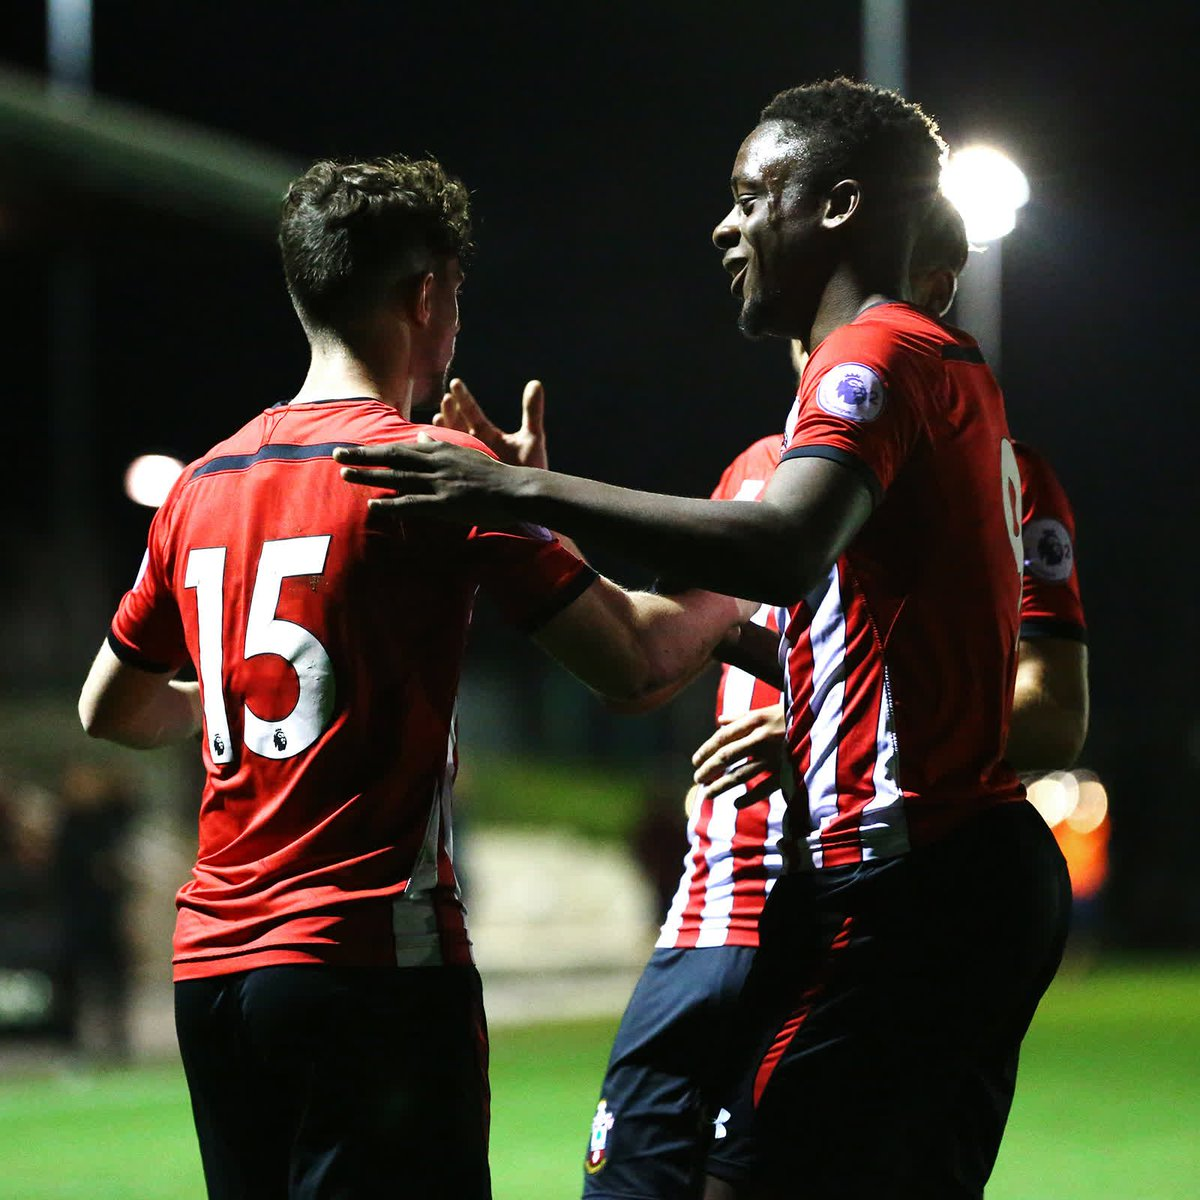 ⚽⚽⚽  Watch back the goals as #SaintsFC's youngsters booked their place in the knockout stages of the #PLInternationalCup, with a 3-0 victory over #WHUFC at Staplewood last night: